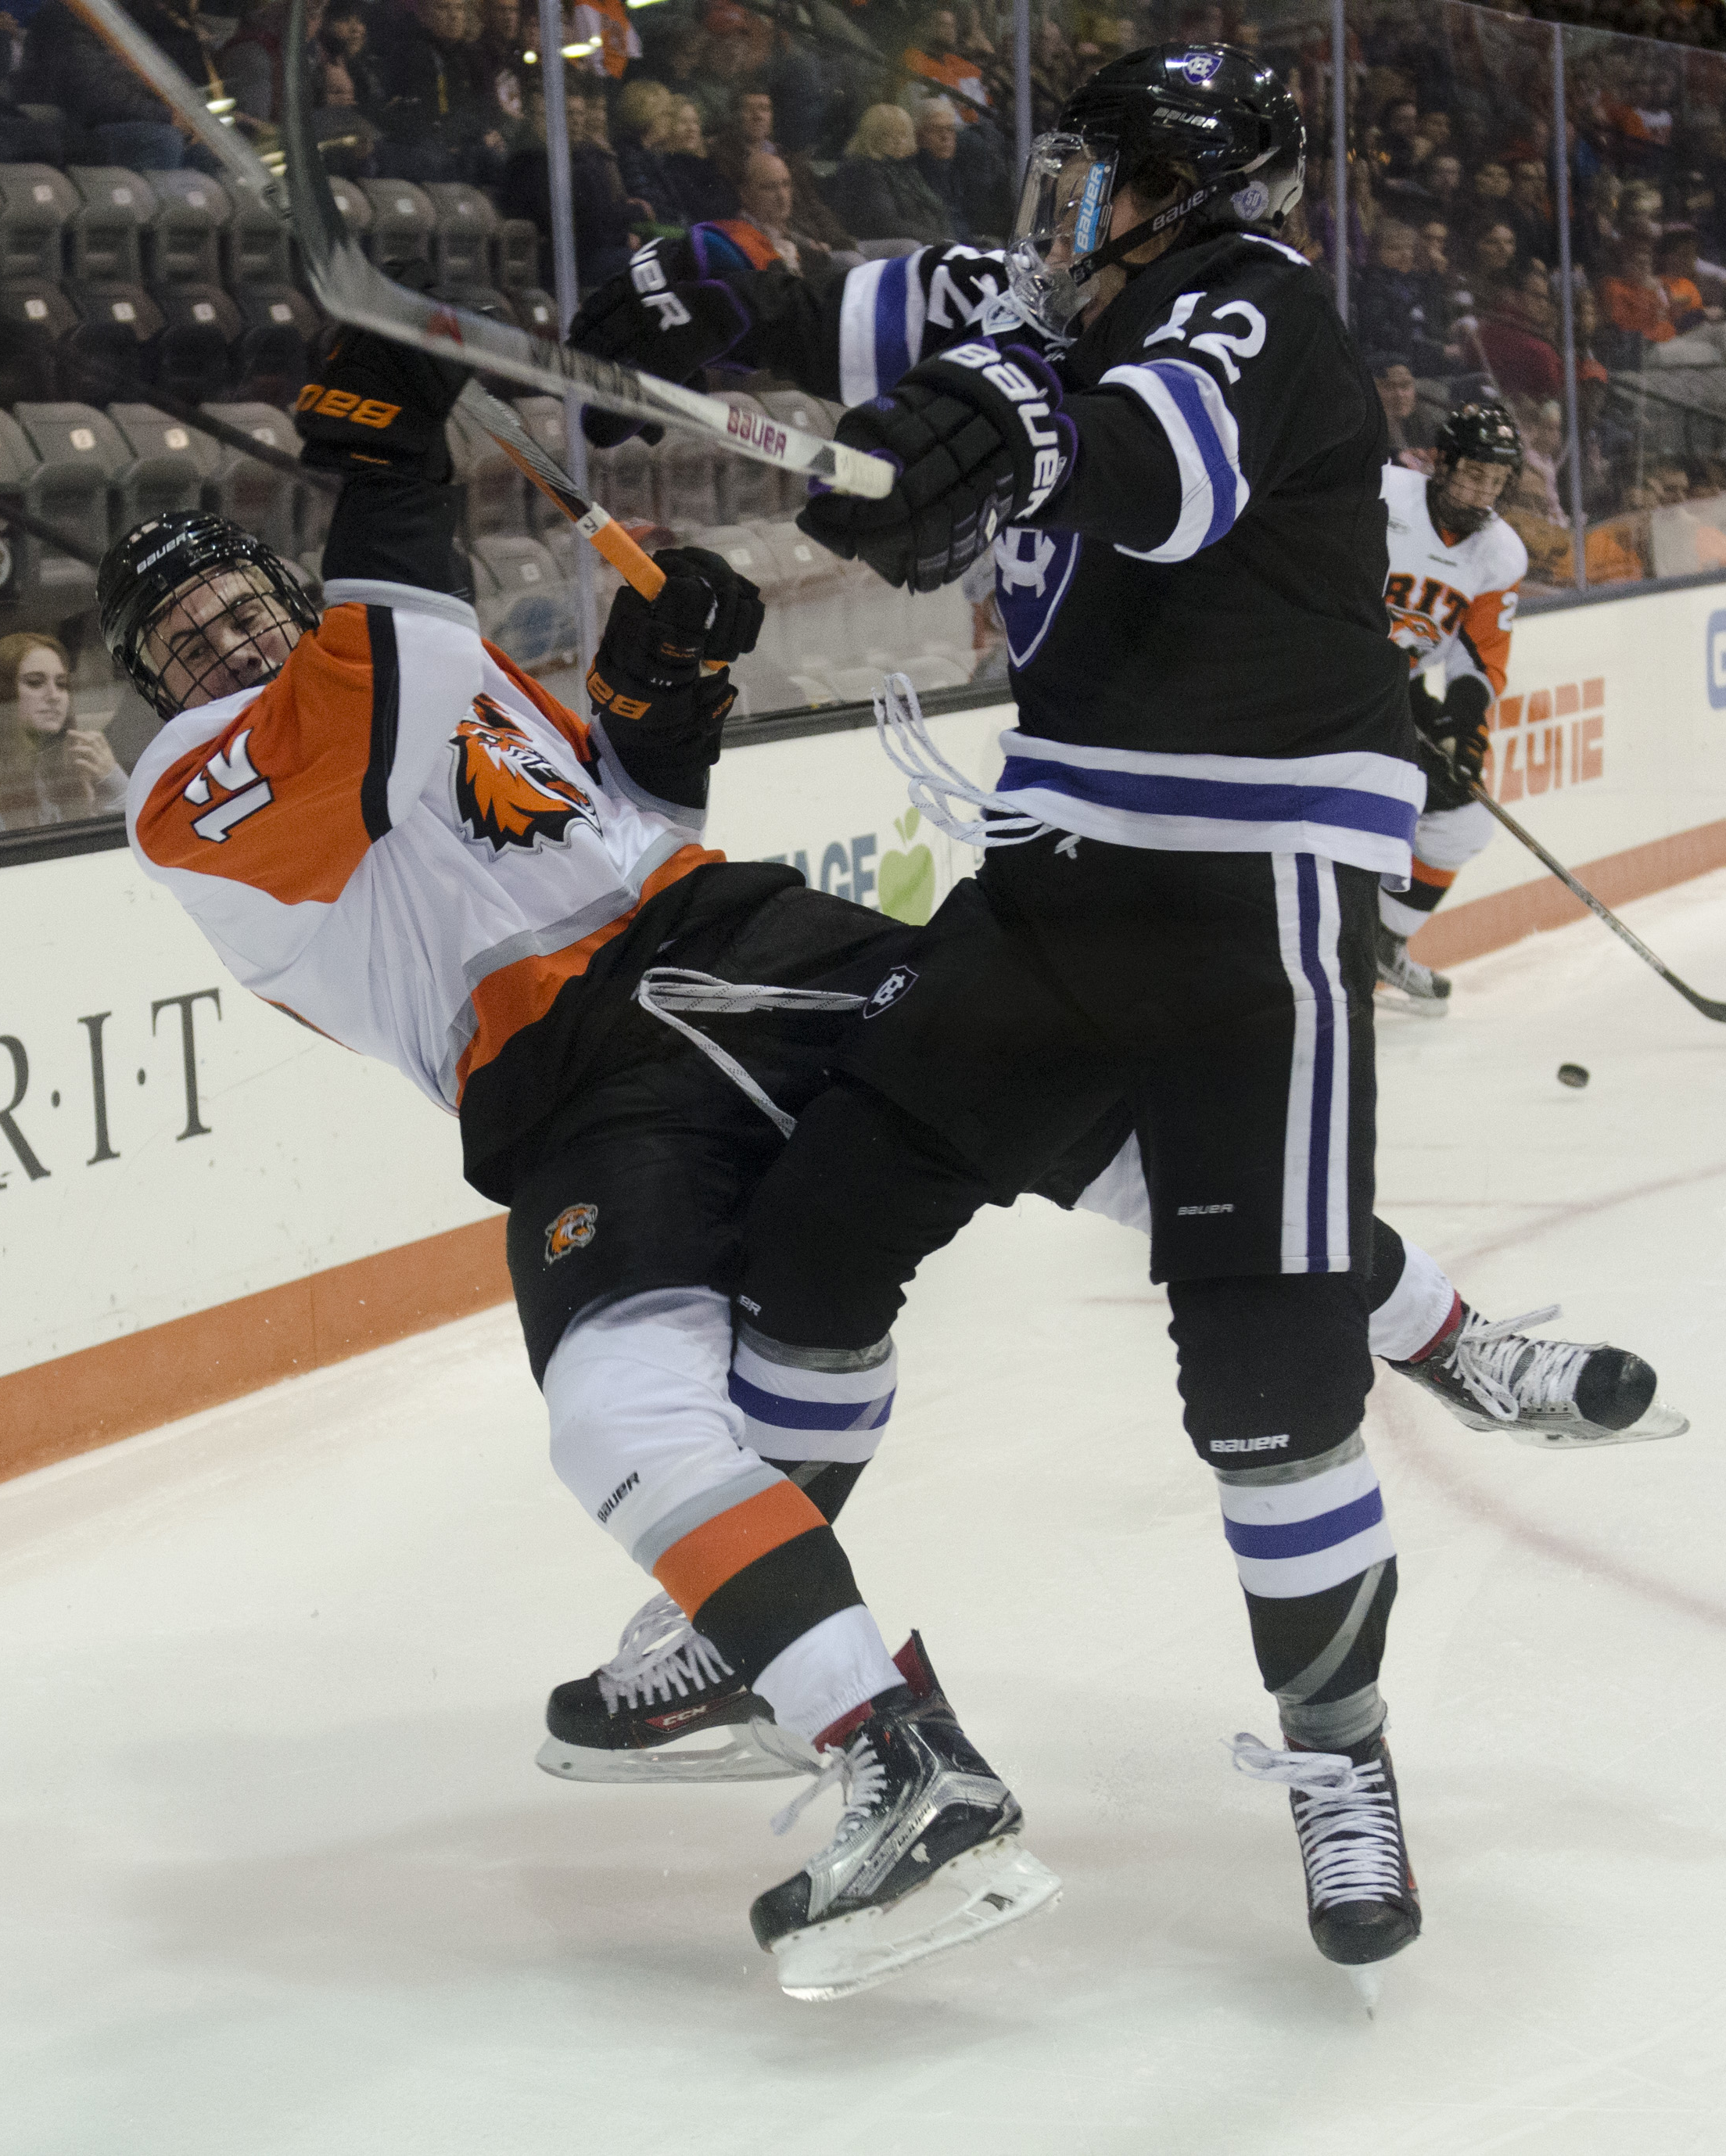 Holy Cross forward Scott Pooley delivers a body check to Rochester Institute of Technology defenseman Greg Amlong during a regular season game in Rochester, N.Y. on Saturday, Jan. 30, 2016. The two teams tied 3-3, following a previous tie of 2-2 the night before.